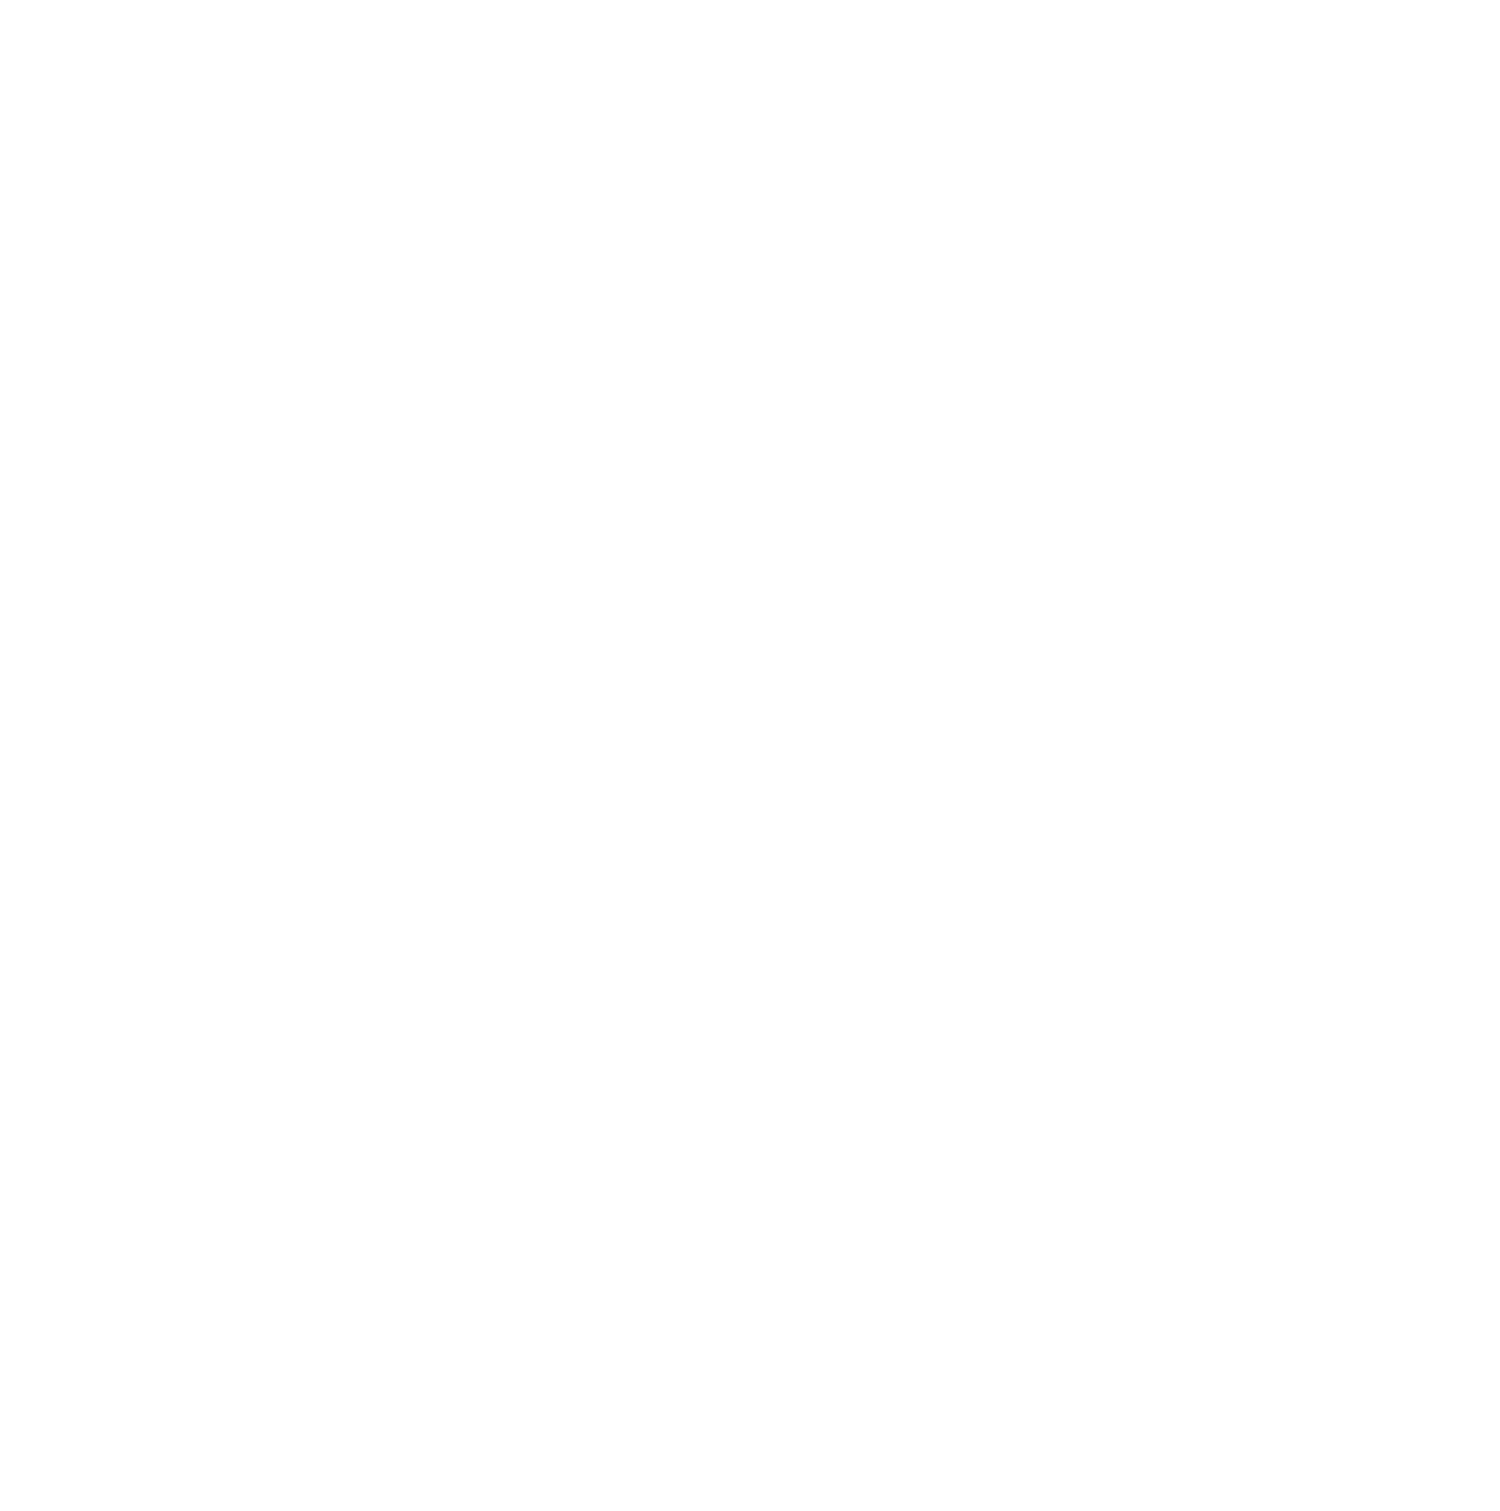 Holy White Hounds